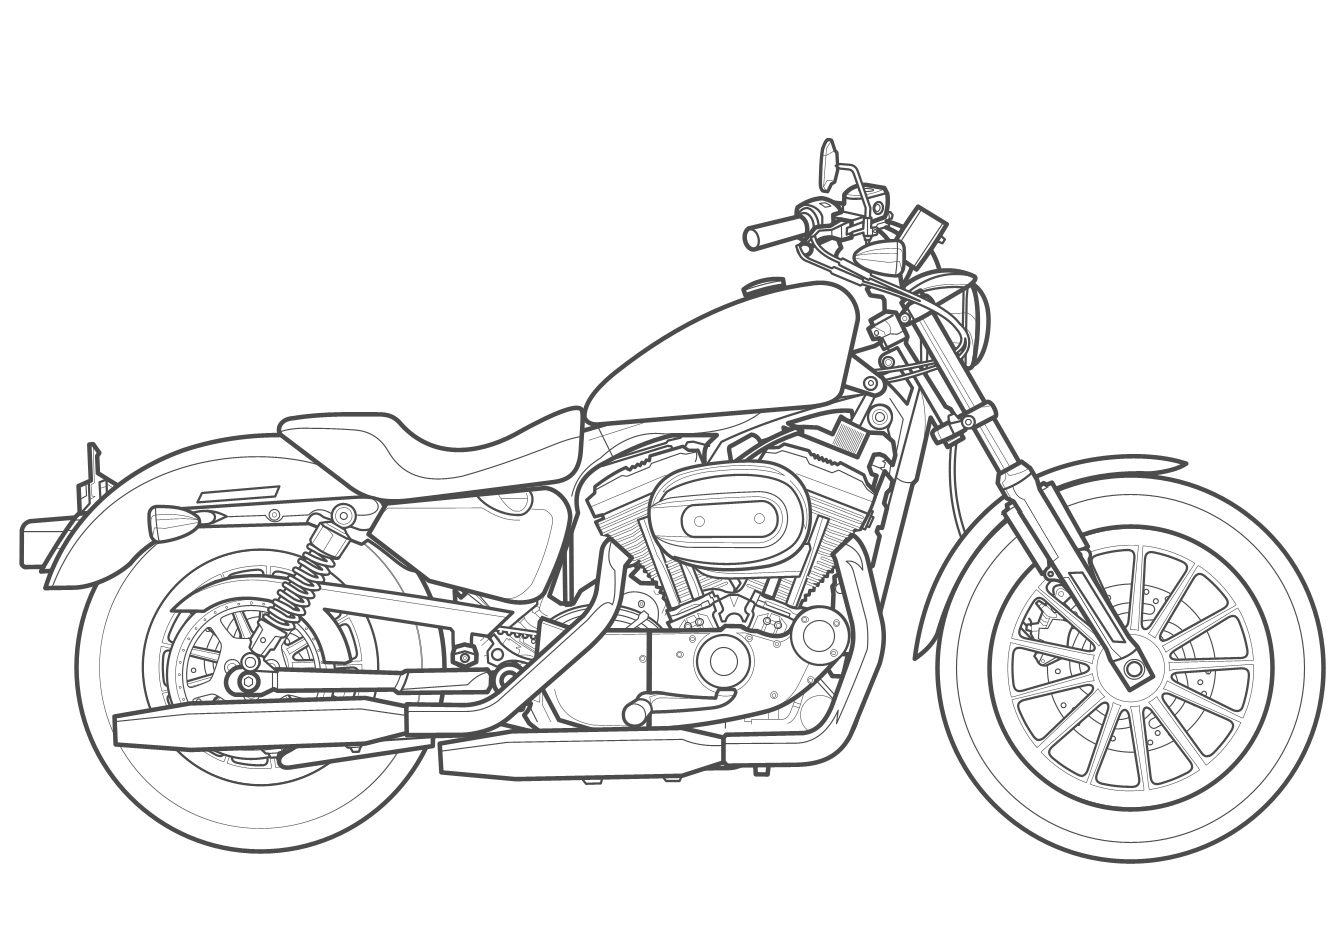 [COOL DIAGRAM] 1988 HERITAGE SOFTAIL WIRING DIAGRAM